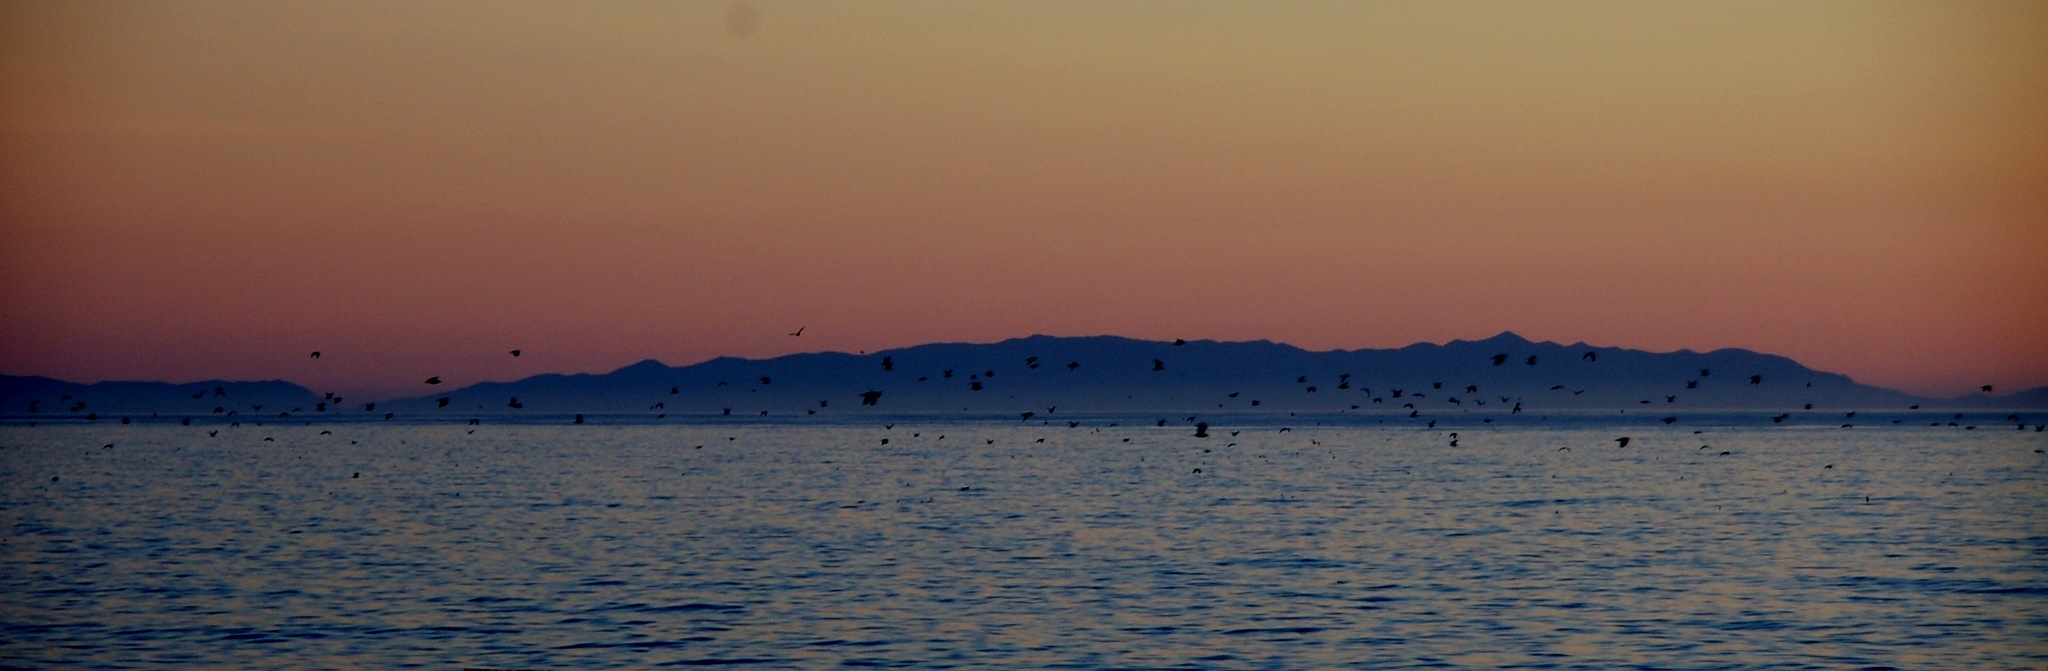 Catalina Island at Dusk by CaliforniaPeggy